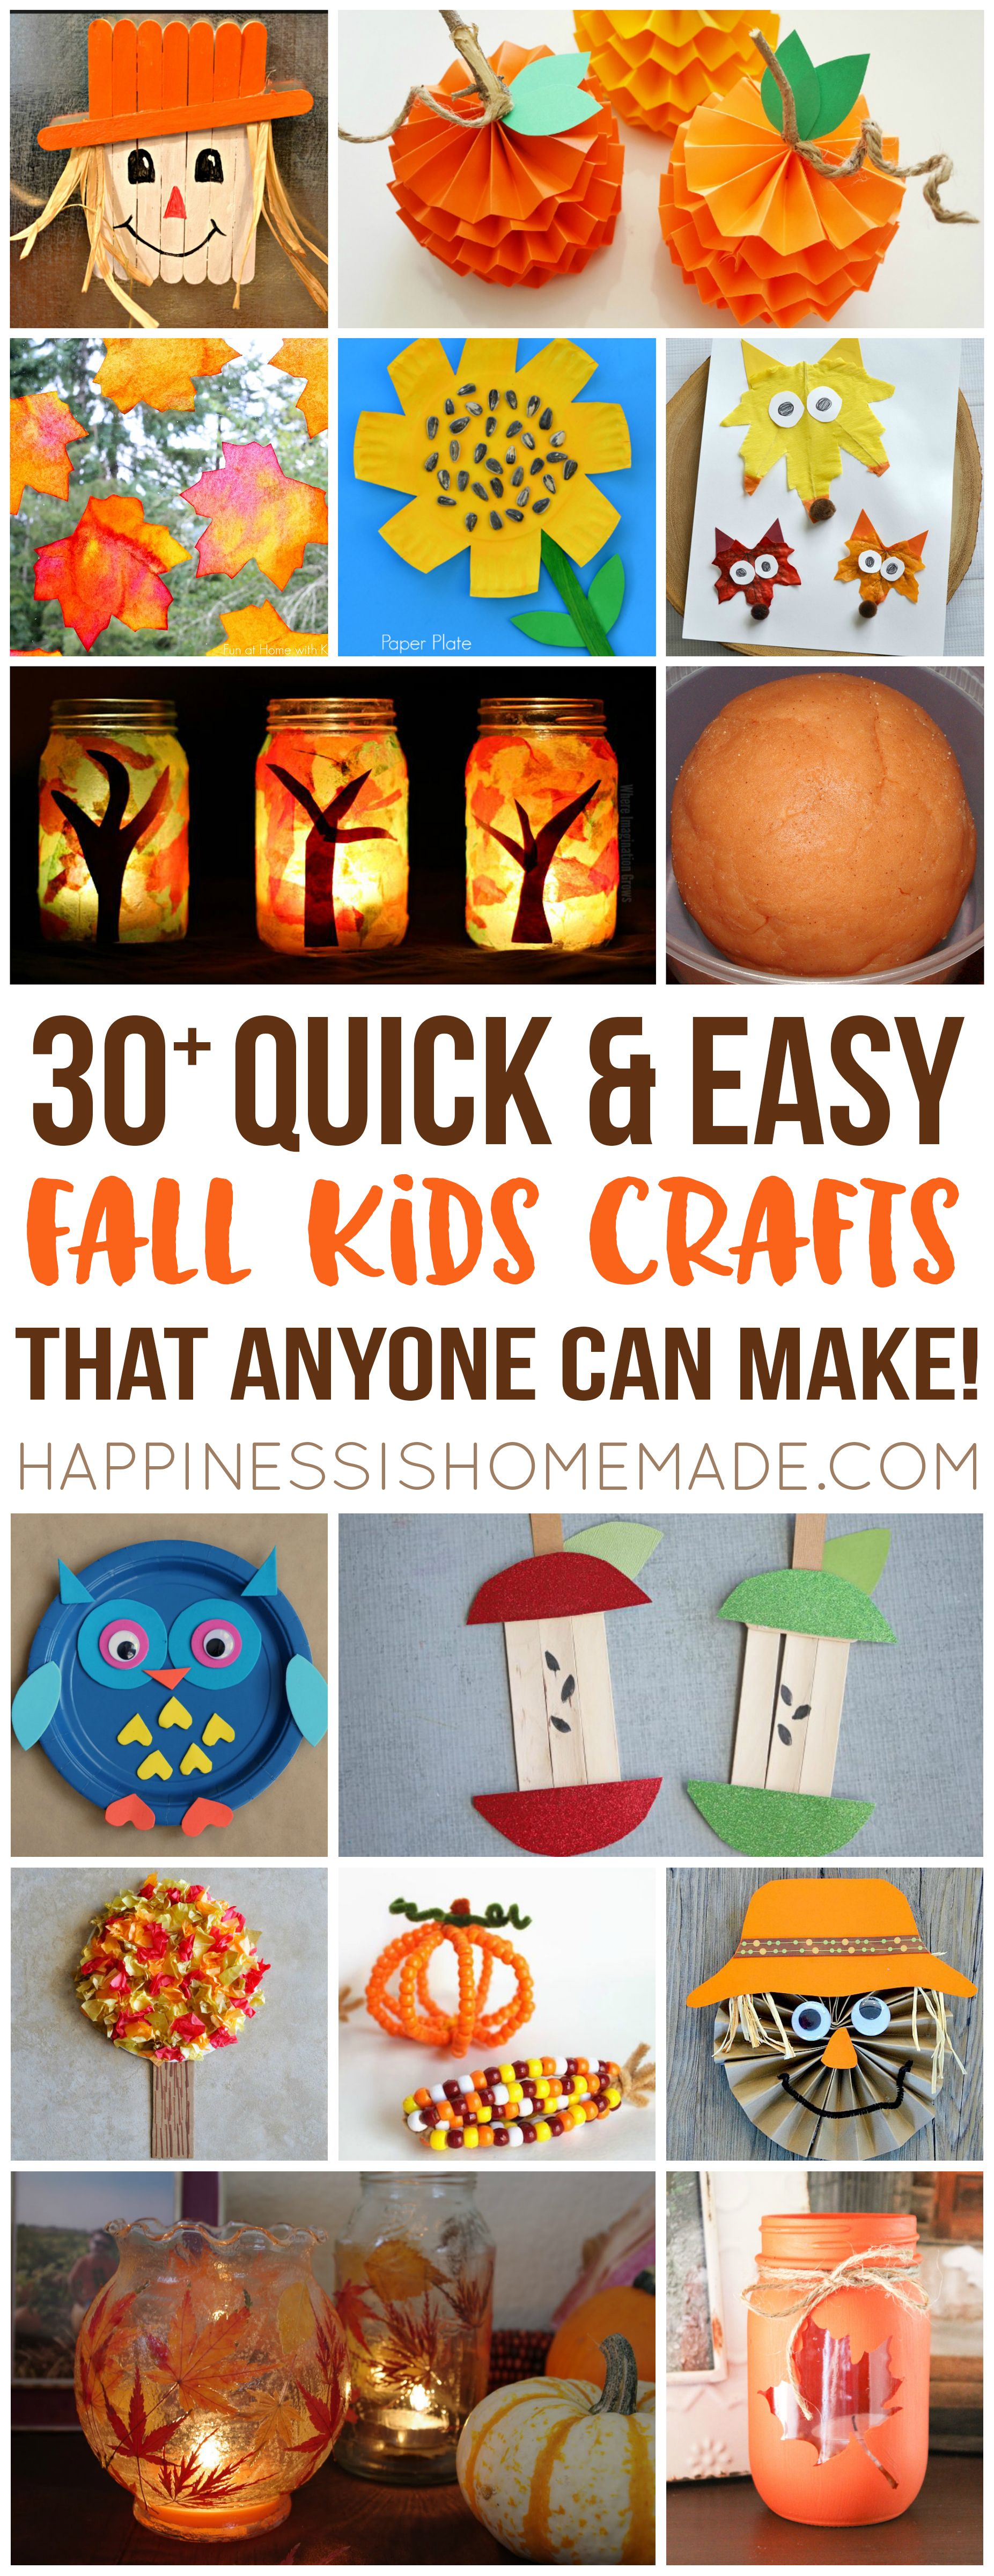 33+ Fall crafts for kid information